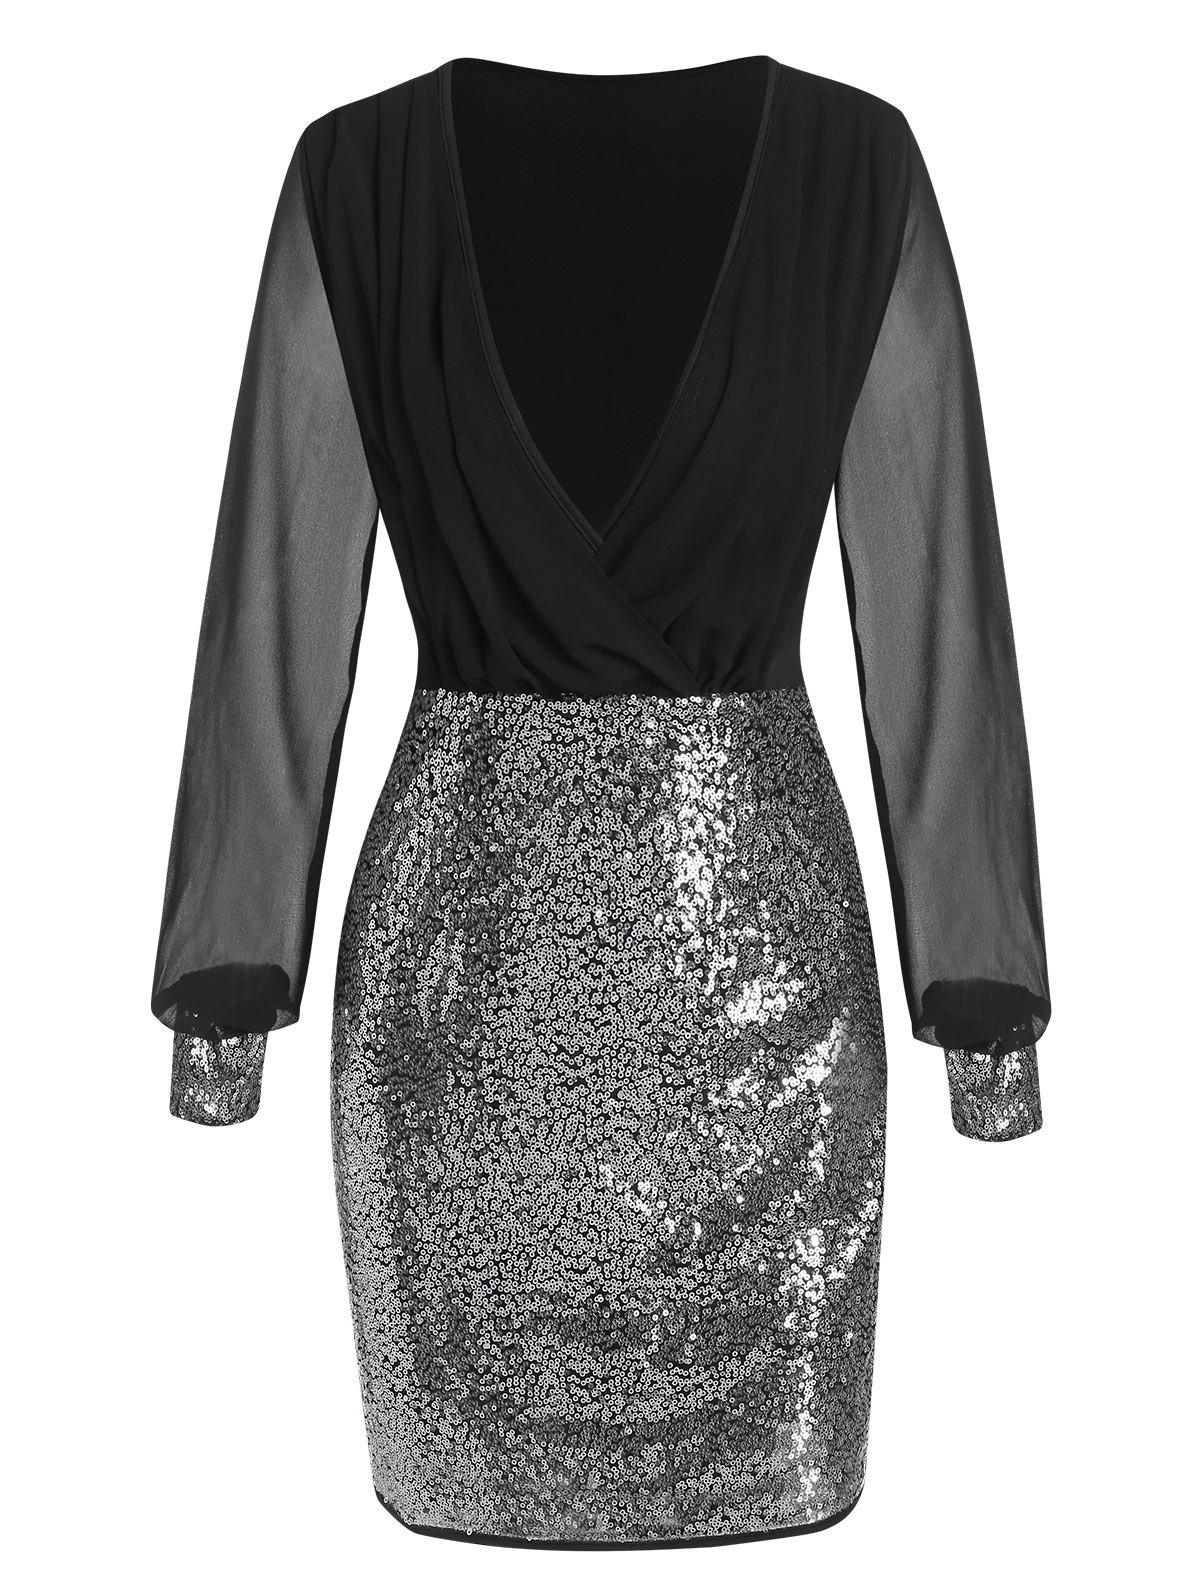 Discount Sequin Panel Chiffon Sleeve Plunge Neck Sheath Dress